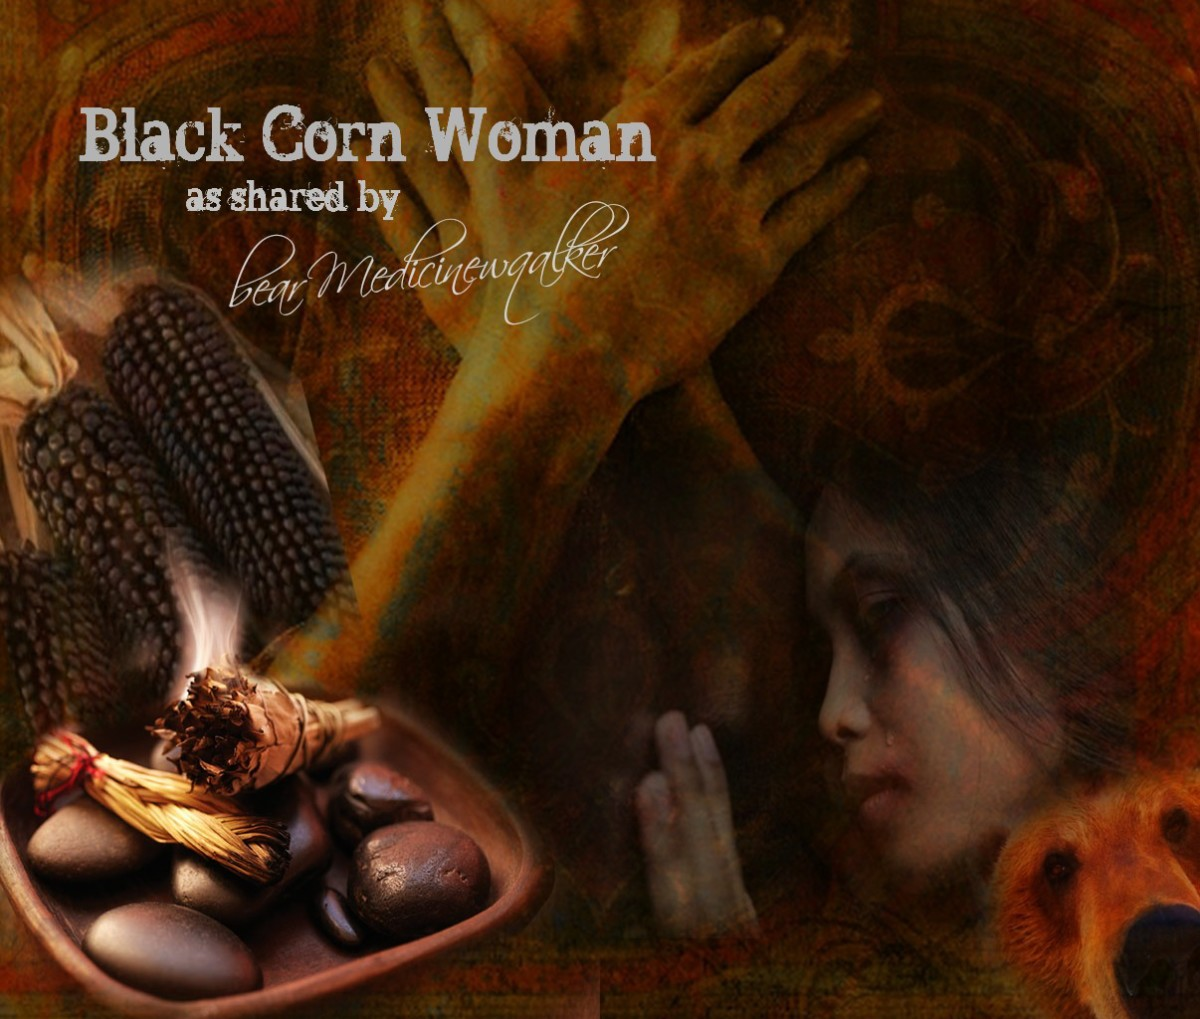 blackcorn woman